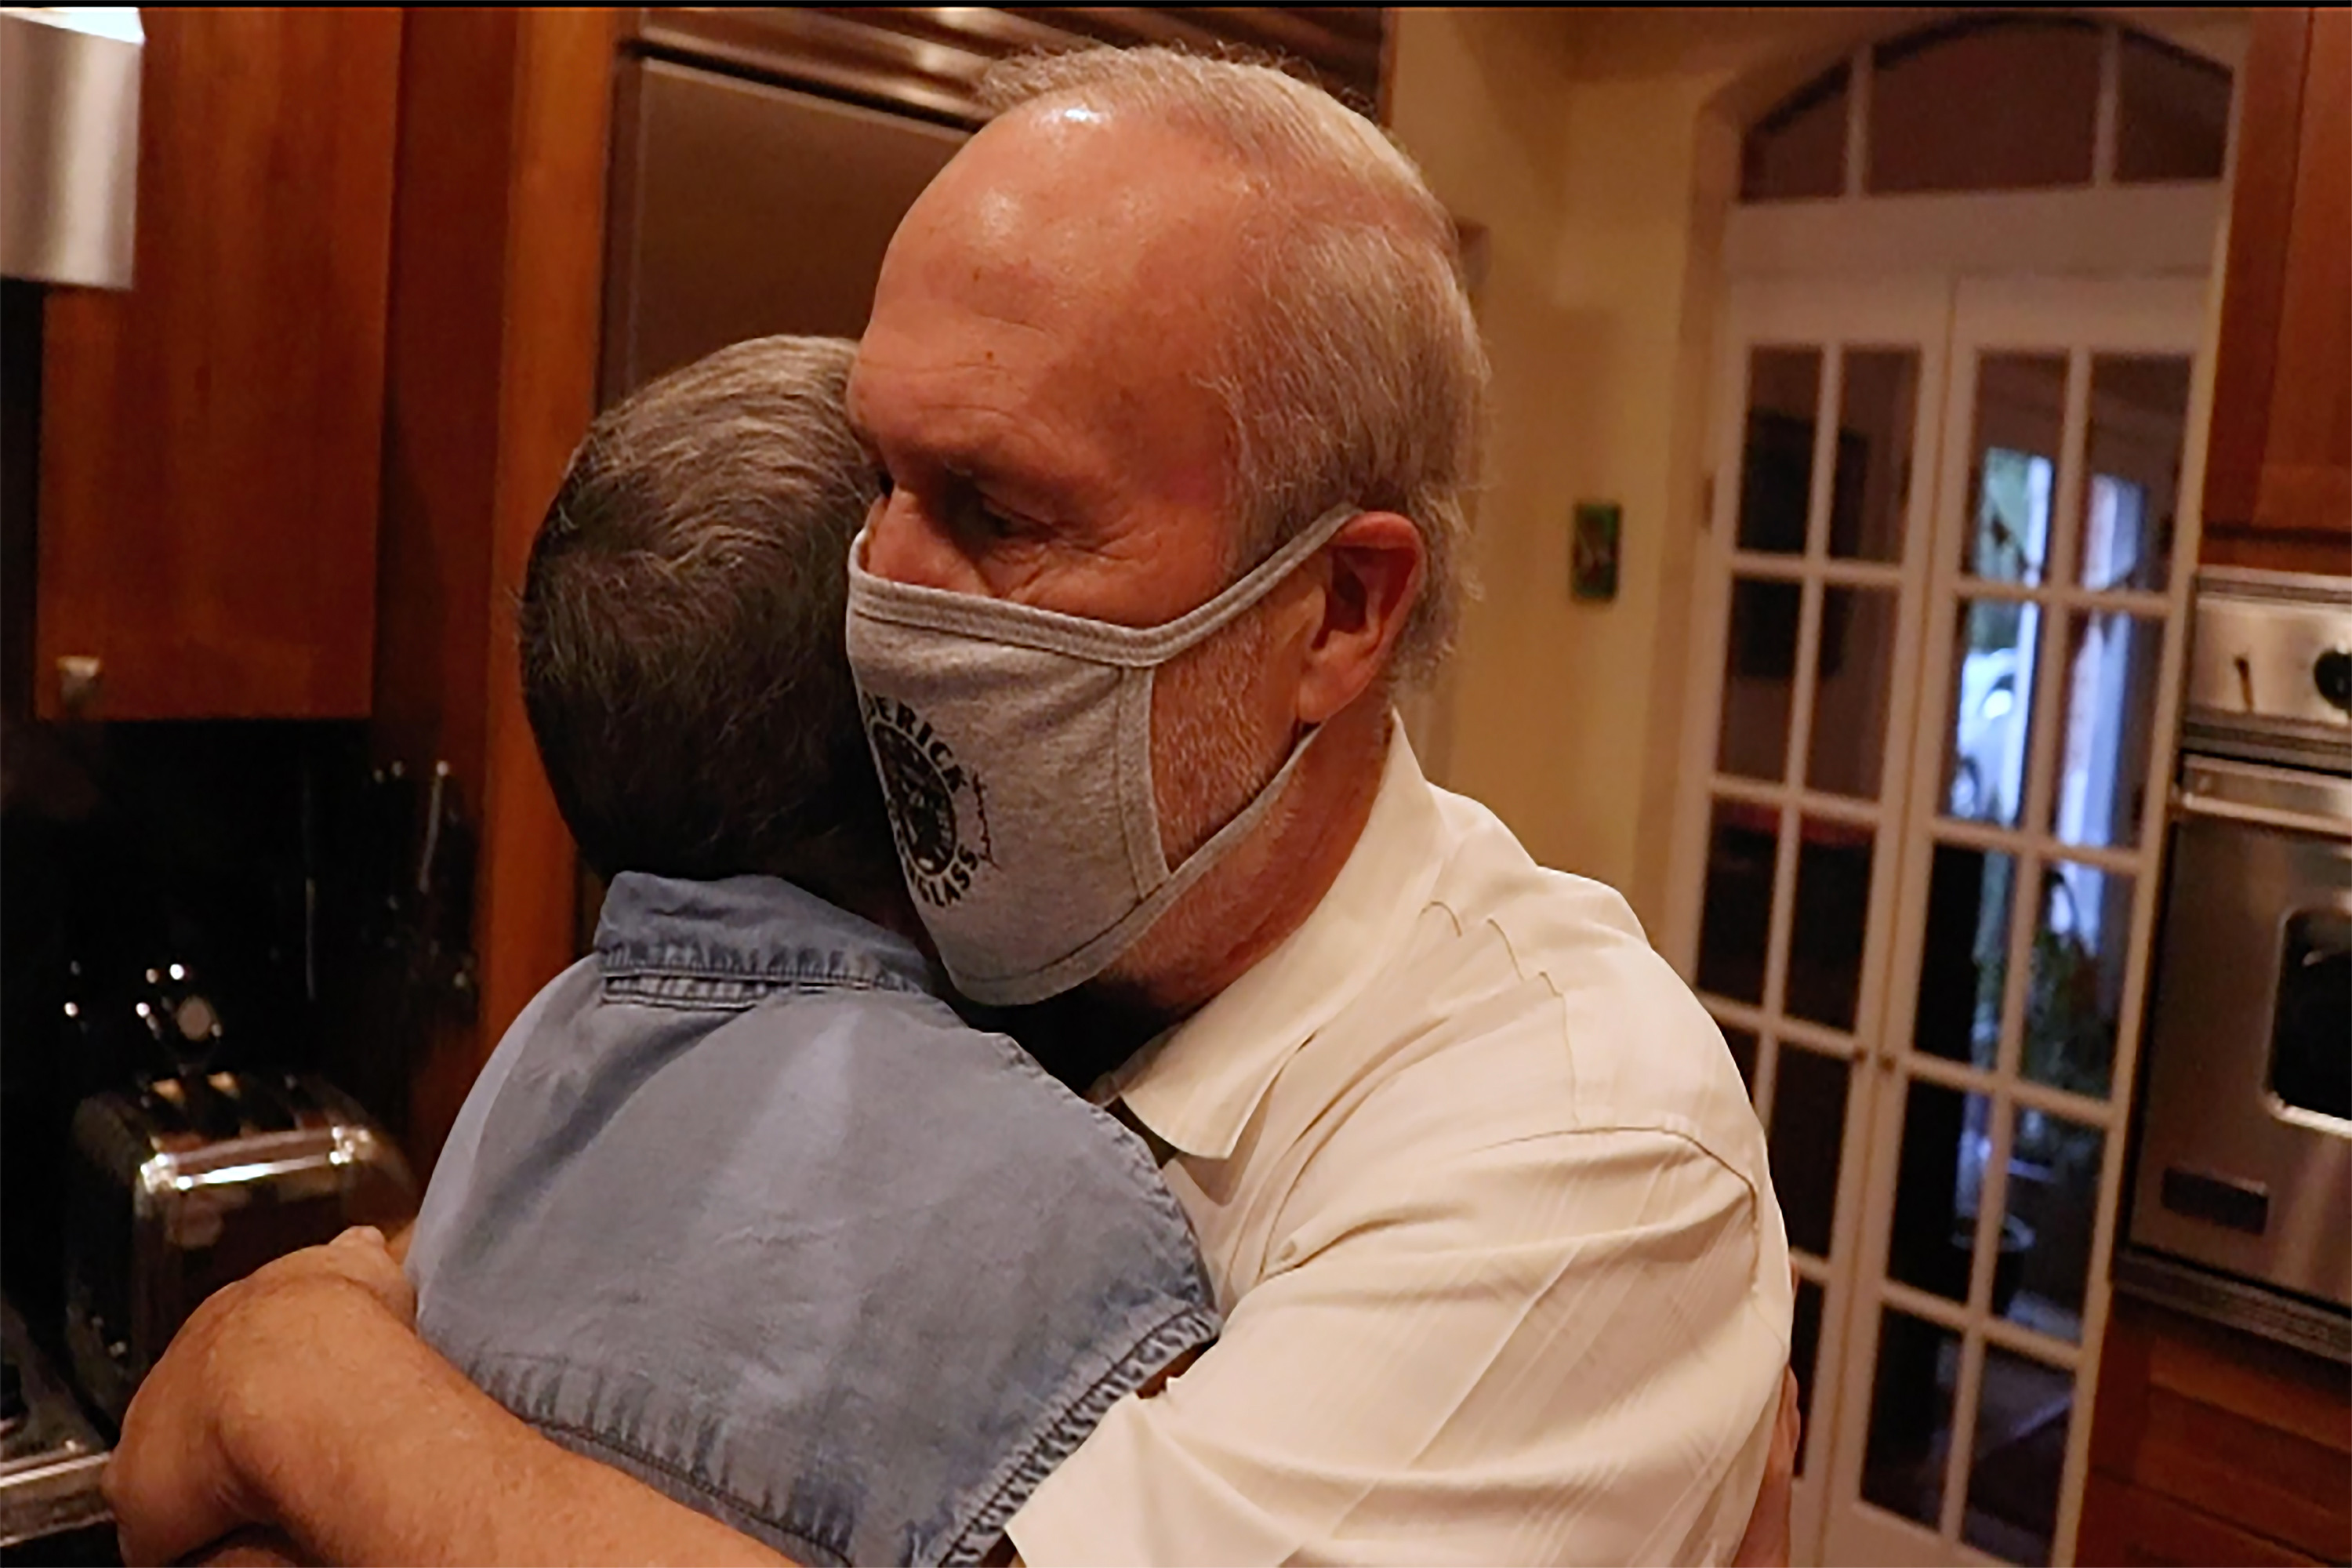 Michele Miller and Jeff Miller' embrace in their Arizona home in fall 2020 as Michele is in remission from ovarian cancer.